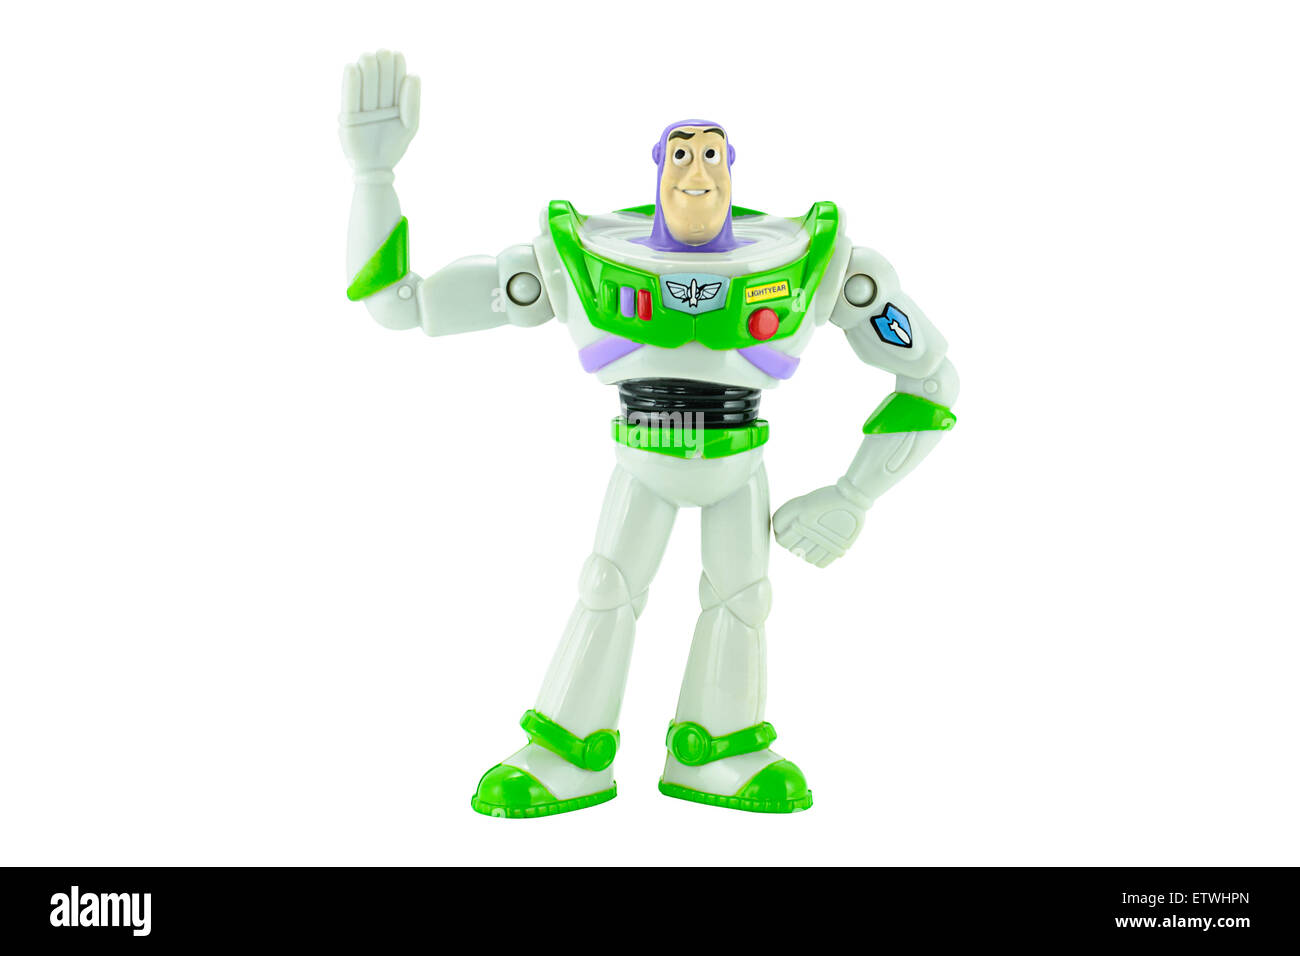 Bangkok,Thailand - February 15, 2015: Buzz Lightyear robot toy character form Toy Story animation film. - Stock Image